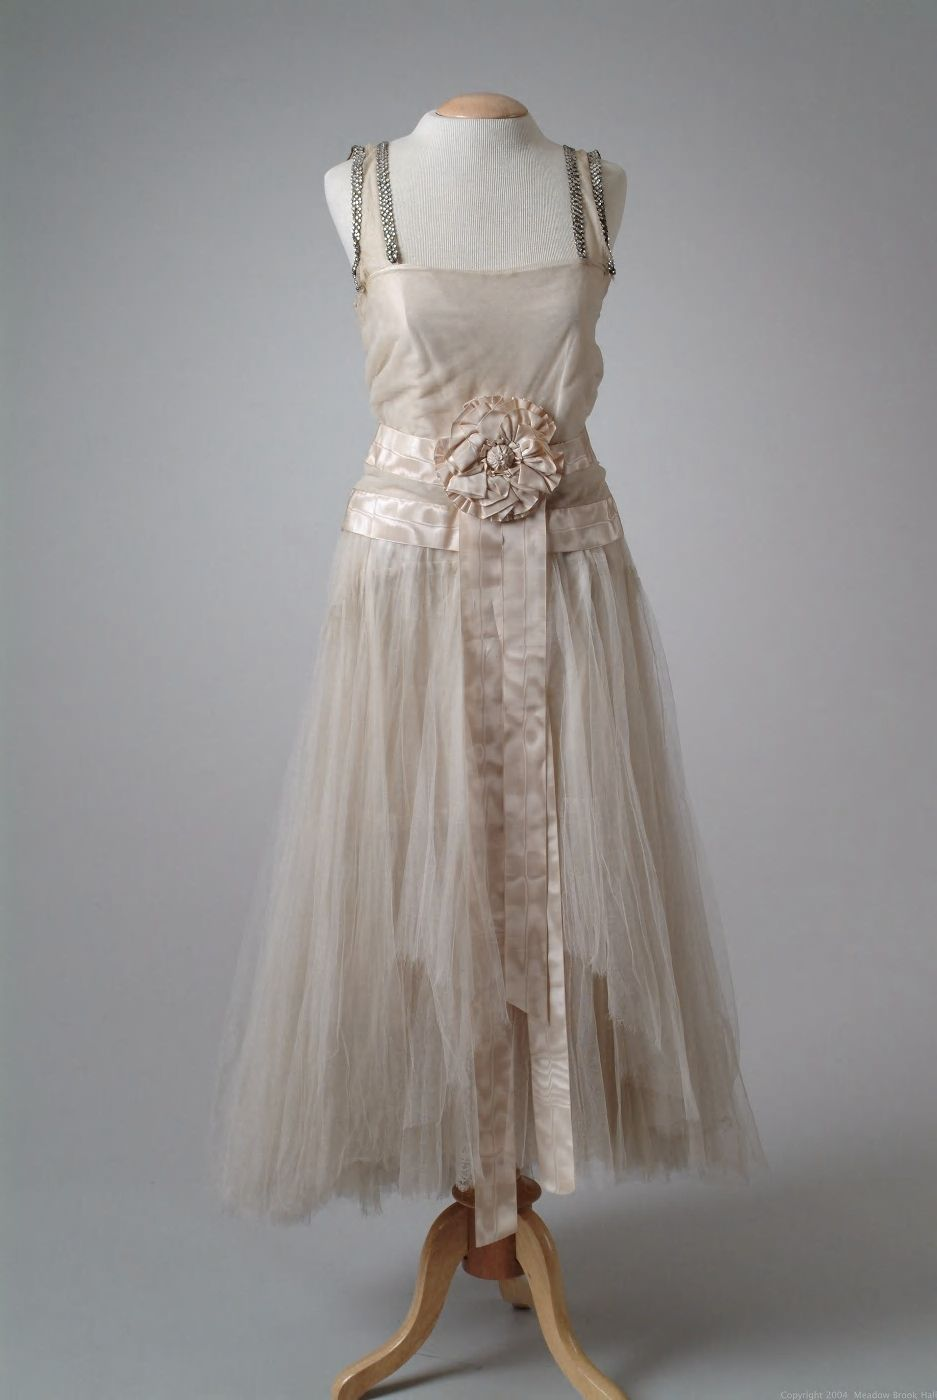 Callot Soeurs - 1923 - The Meadow Brook Hall Historic Costume Collection